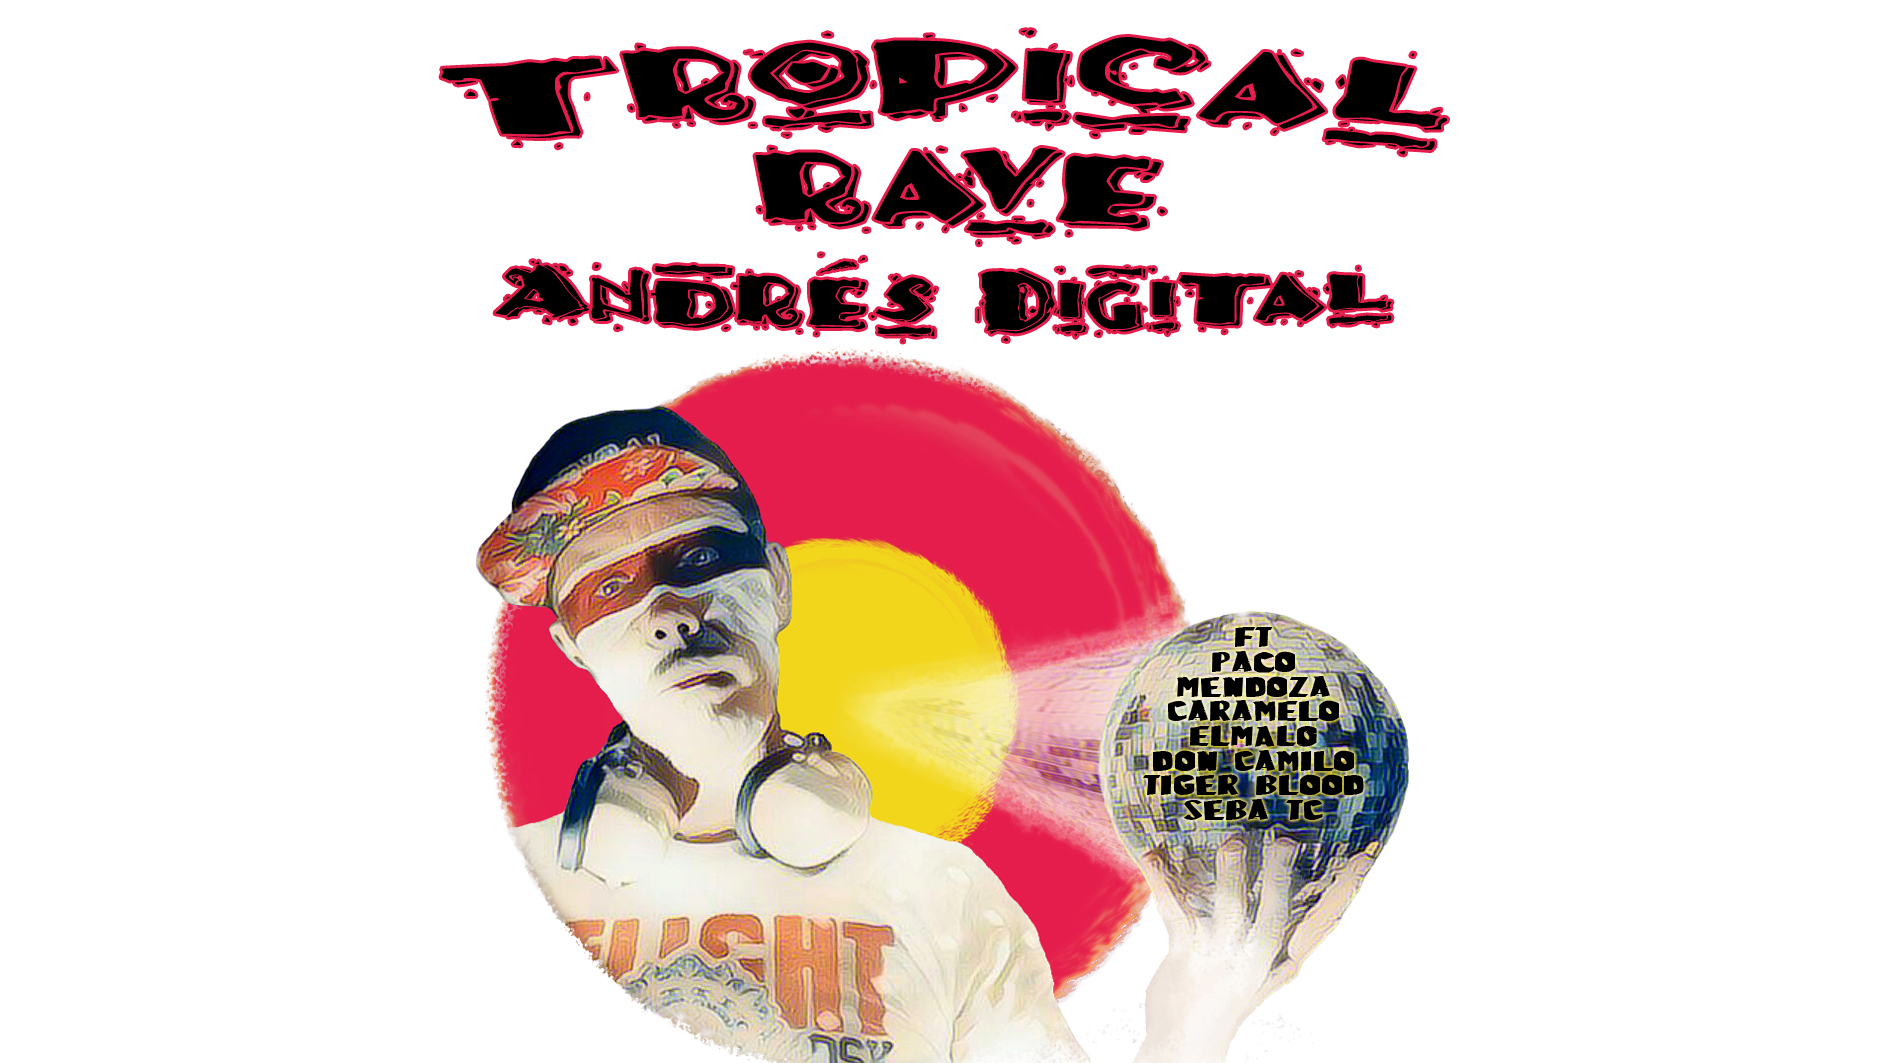 Releasetime on tropicalbass.com - We are very proud to present the new Album by our man Andrés Digital - Tropical Rave